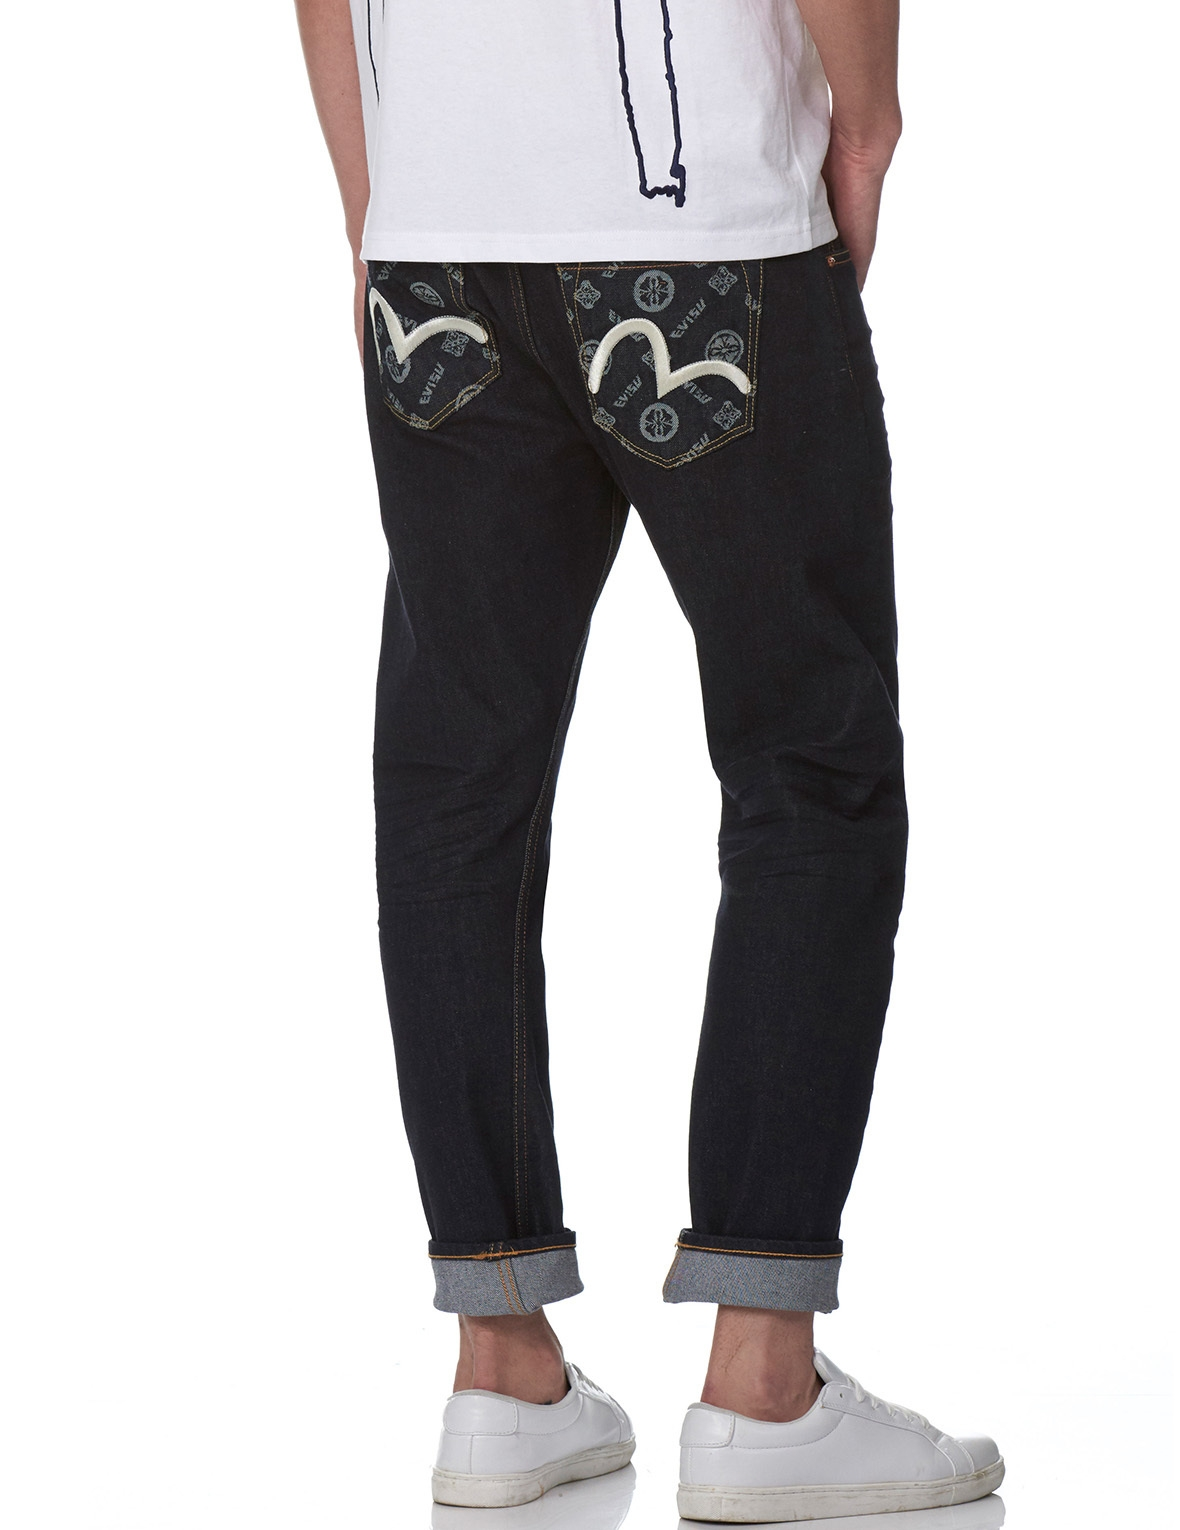 EVISU DENIM JEANS WITH JACQUARD POCKETS